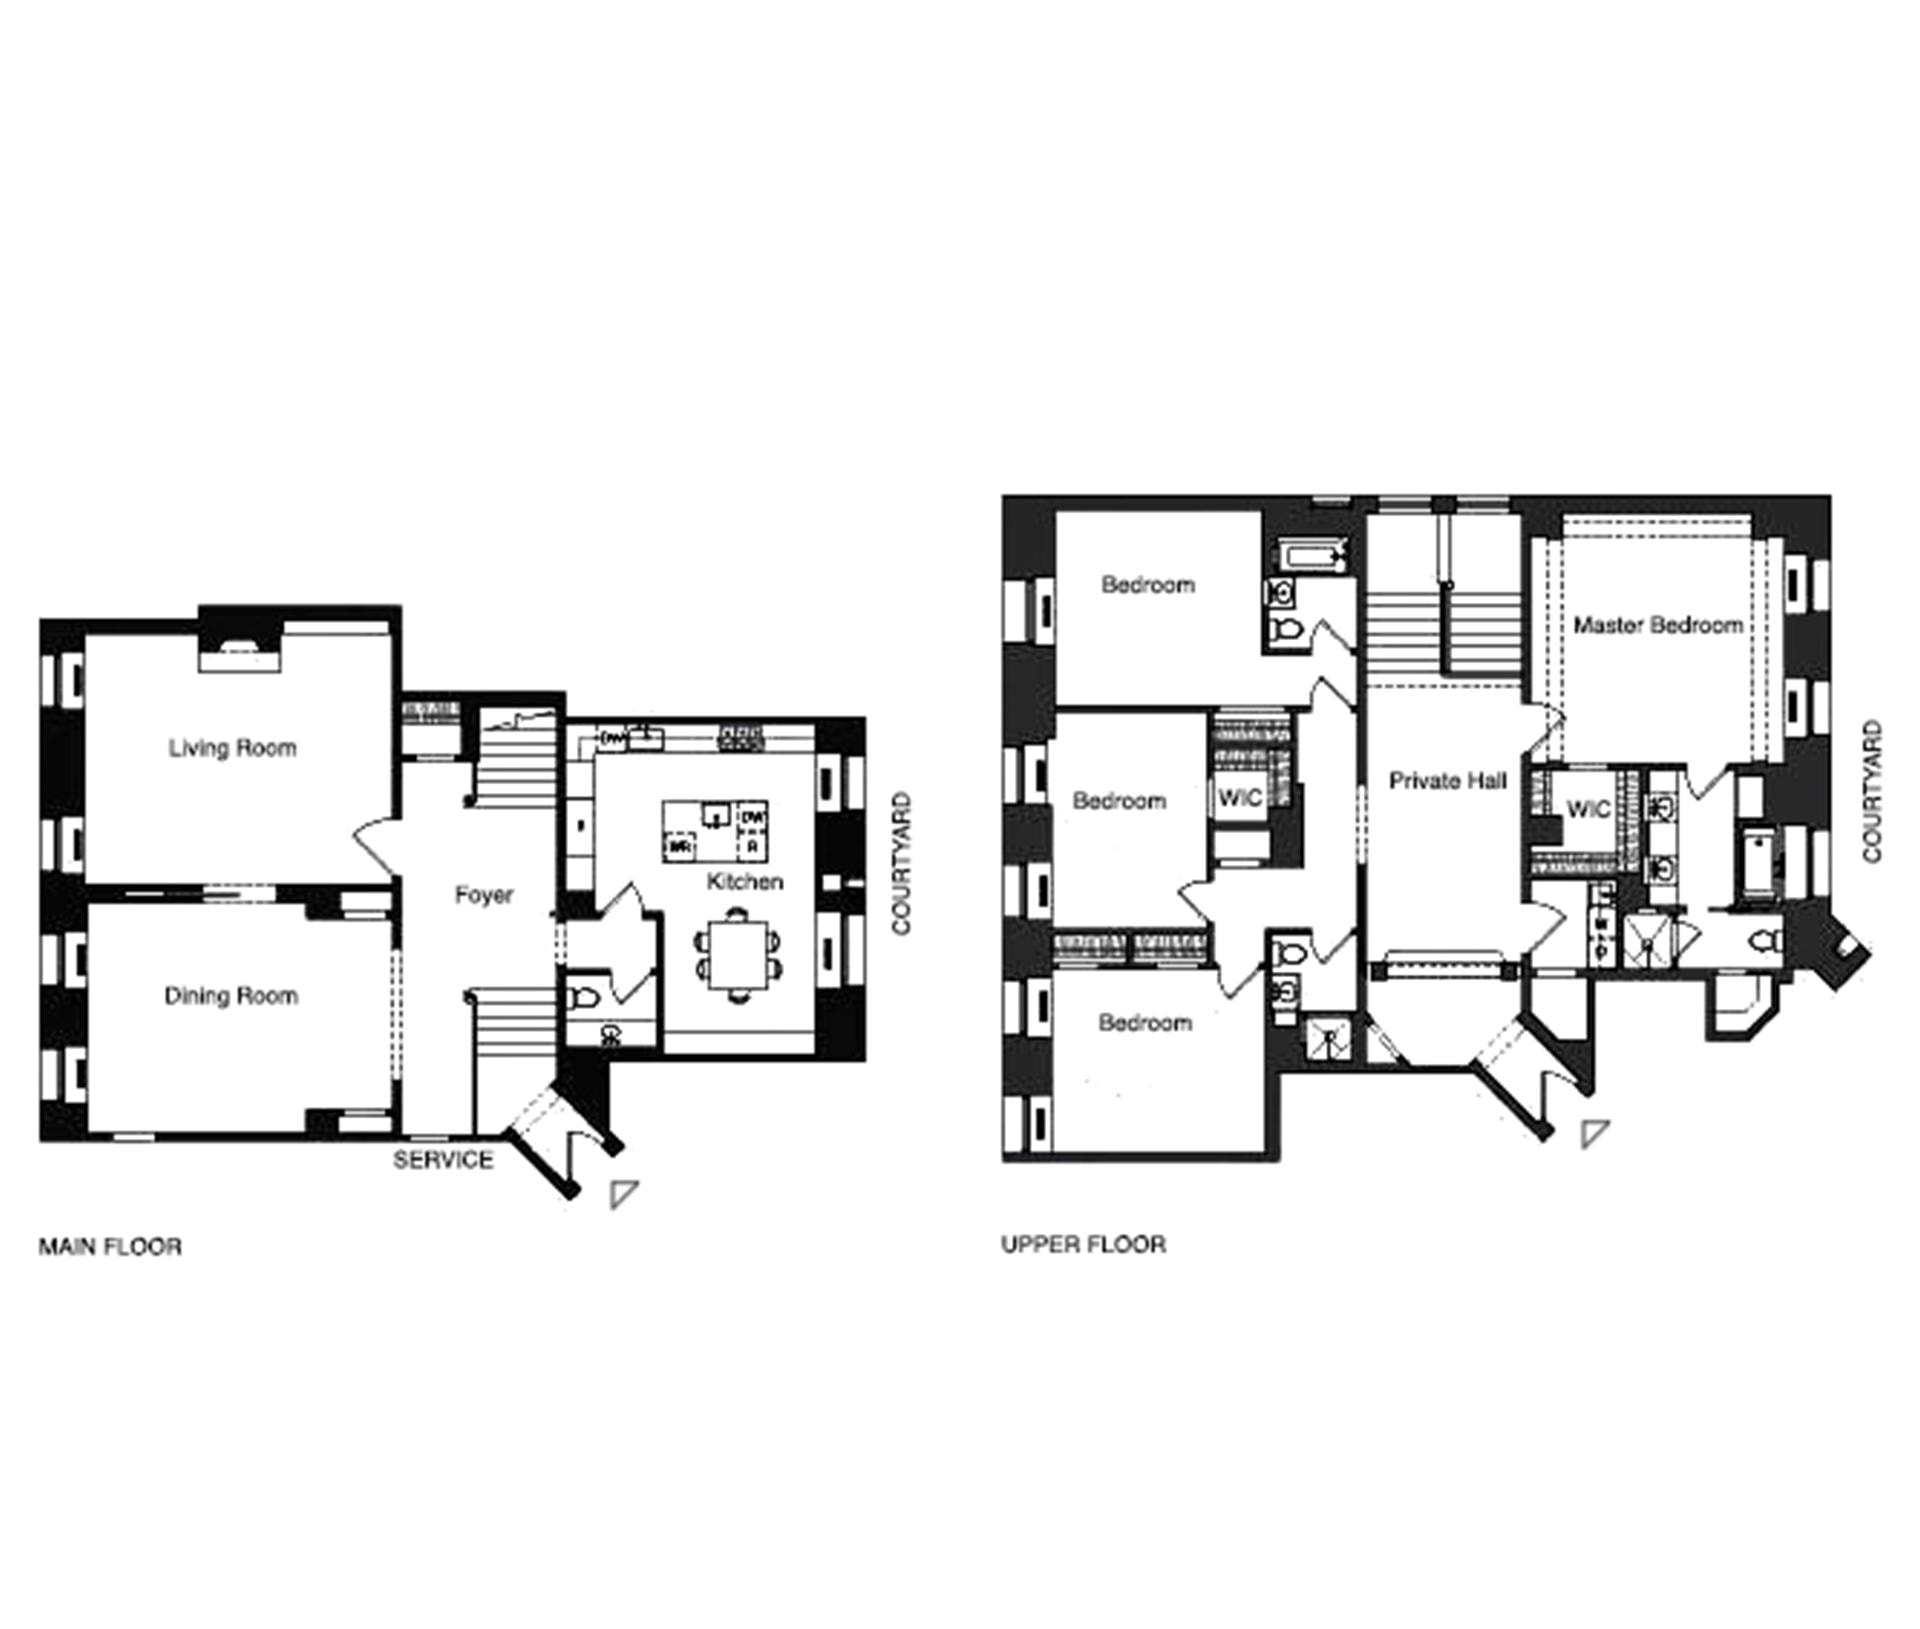 Macy S Herald Square Floor Plan: The Apthorp - 390 West End Ave - NYC